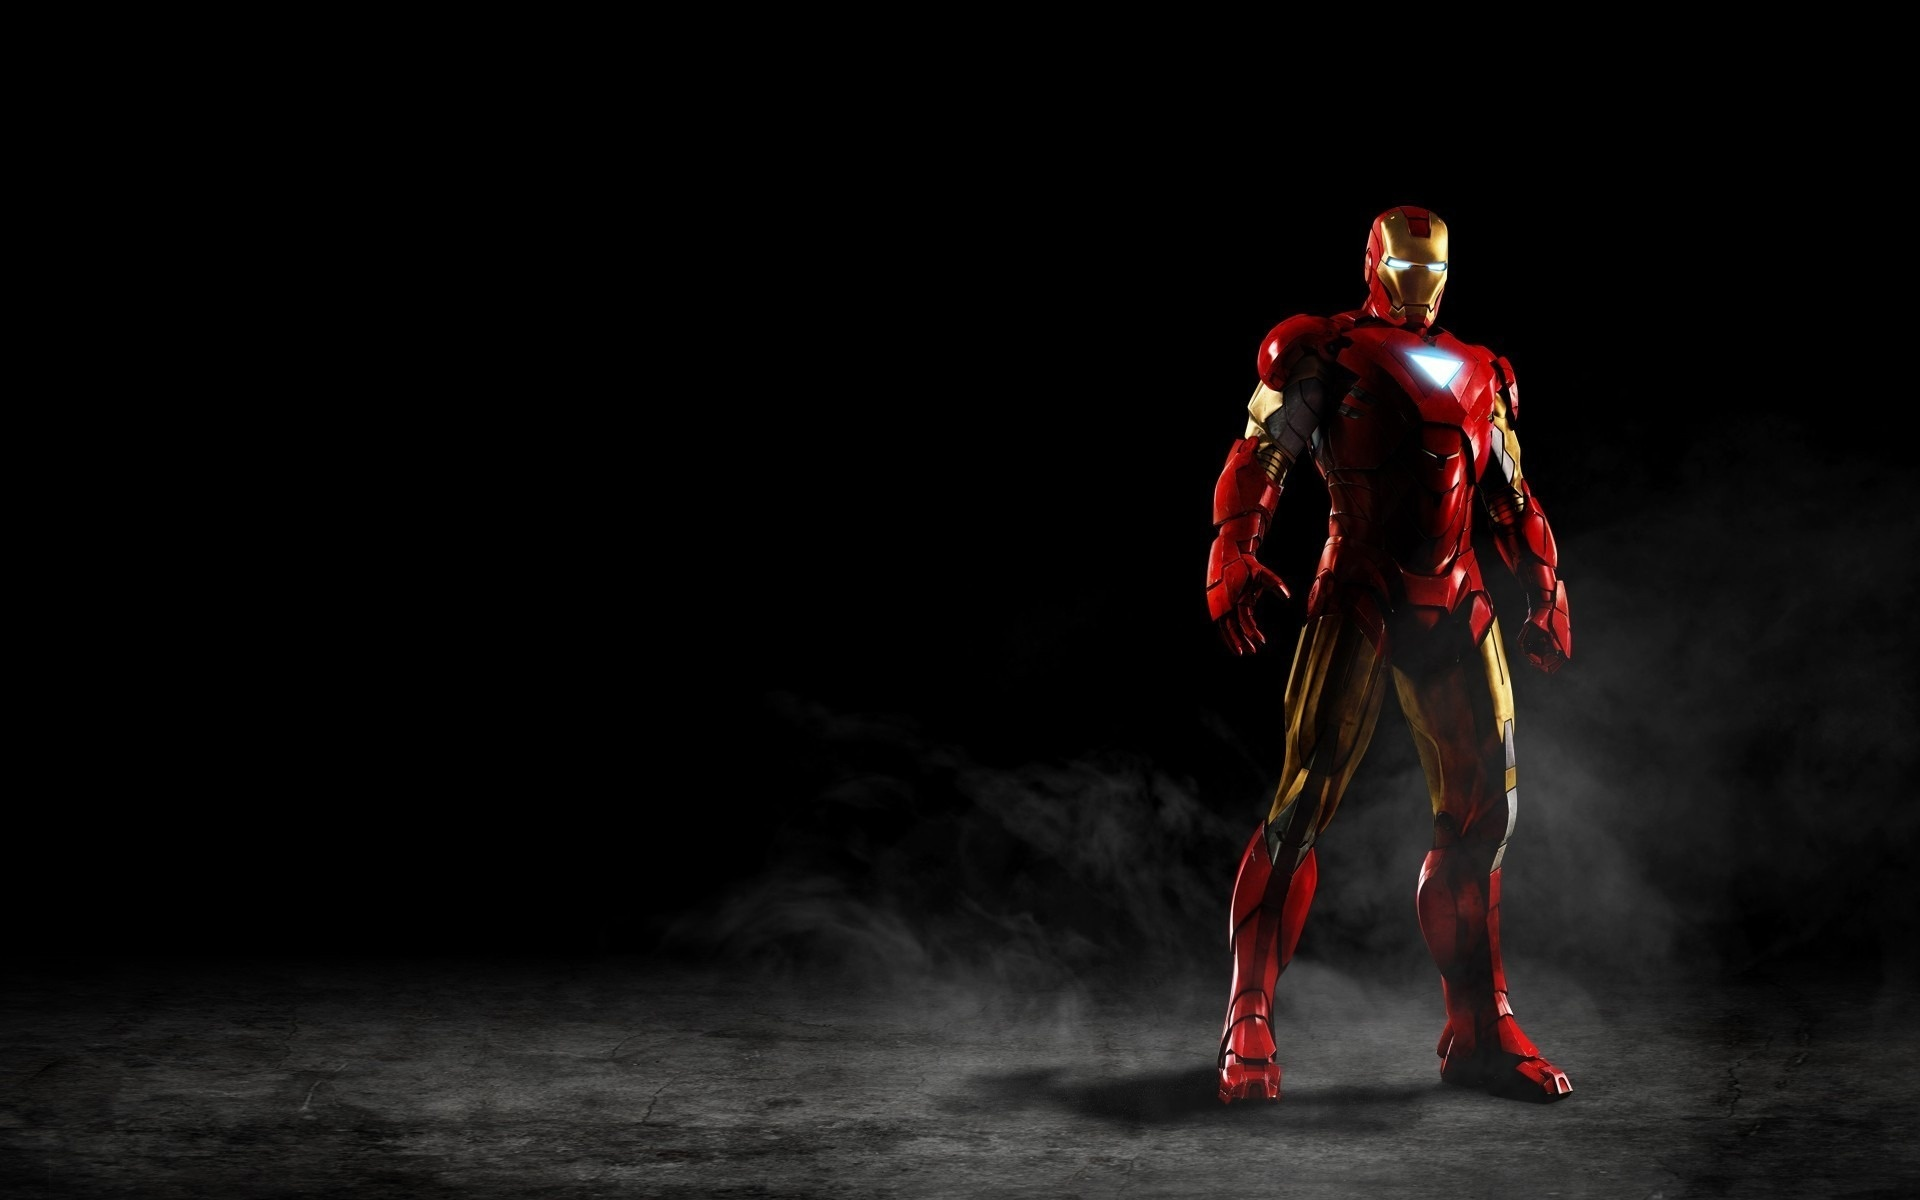 Iron Man Wallpaper free download